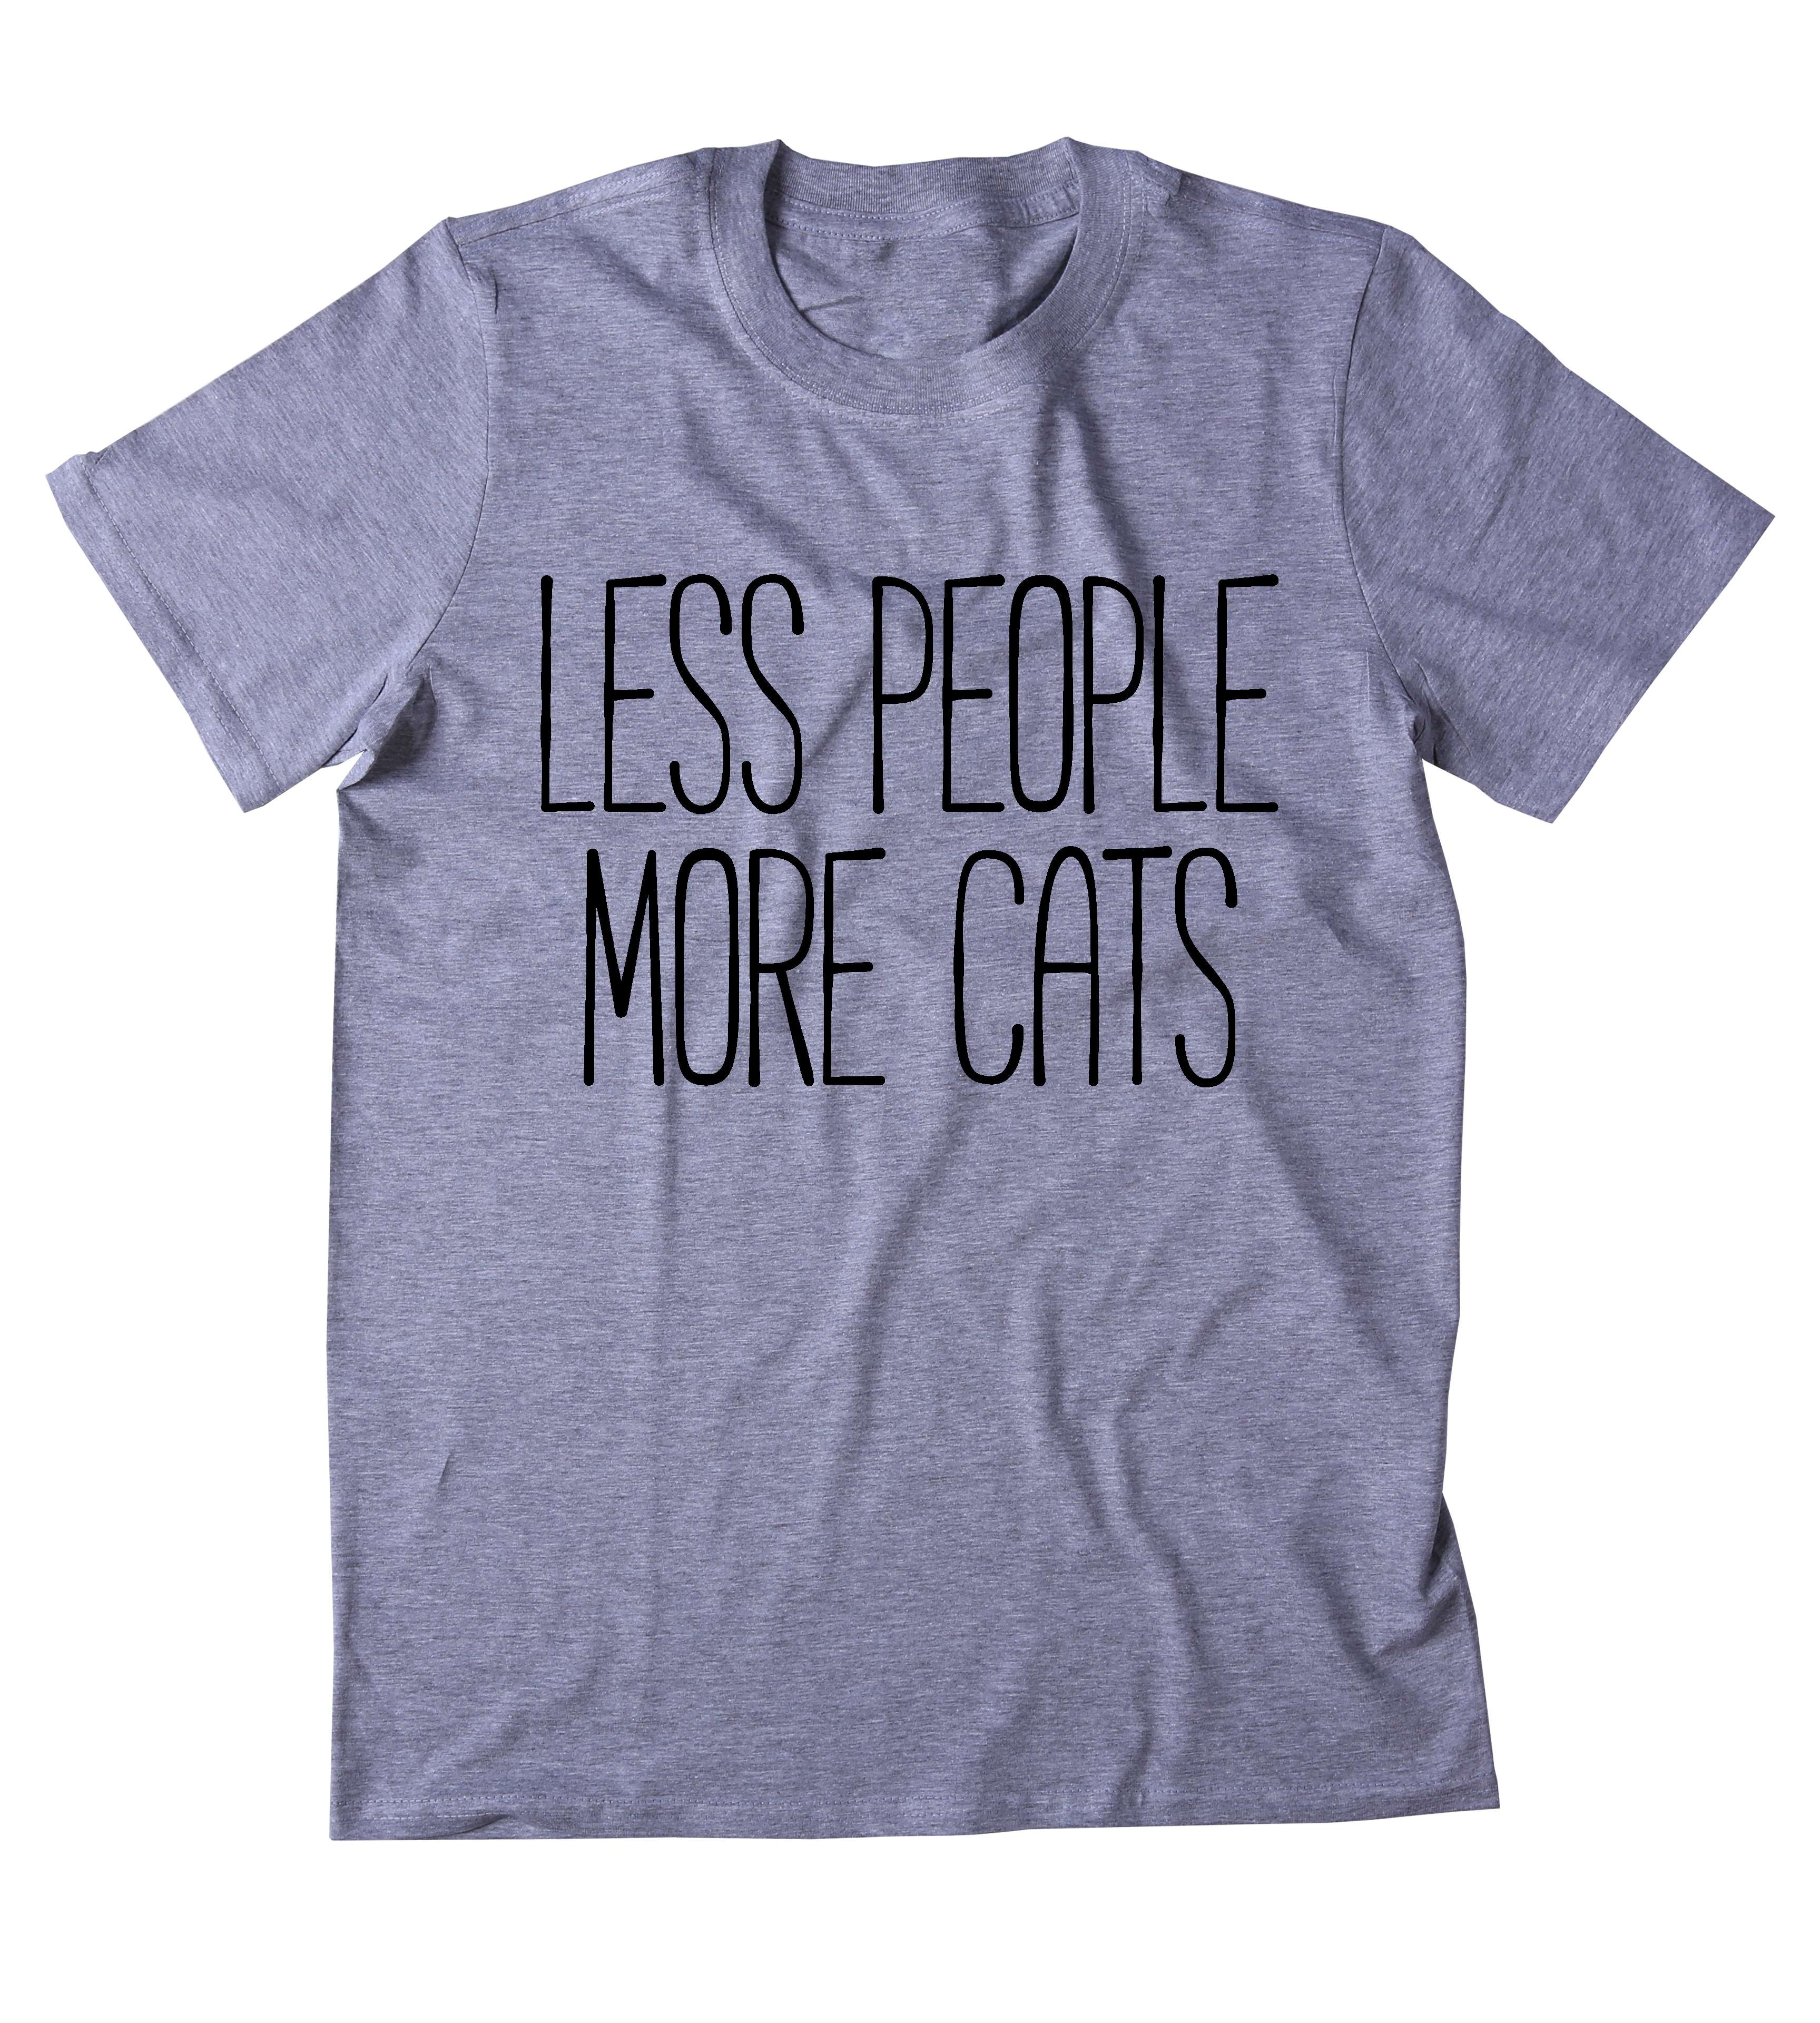 1183d83e0 Less People More Cats T-Shirt Funny Cat Animal Lover Kitten Owner Clothing  Tumblr Shirt on Storenvy